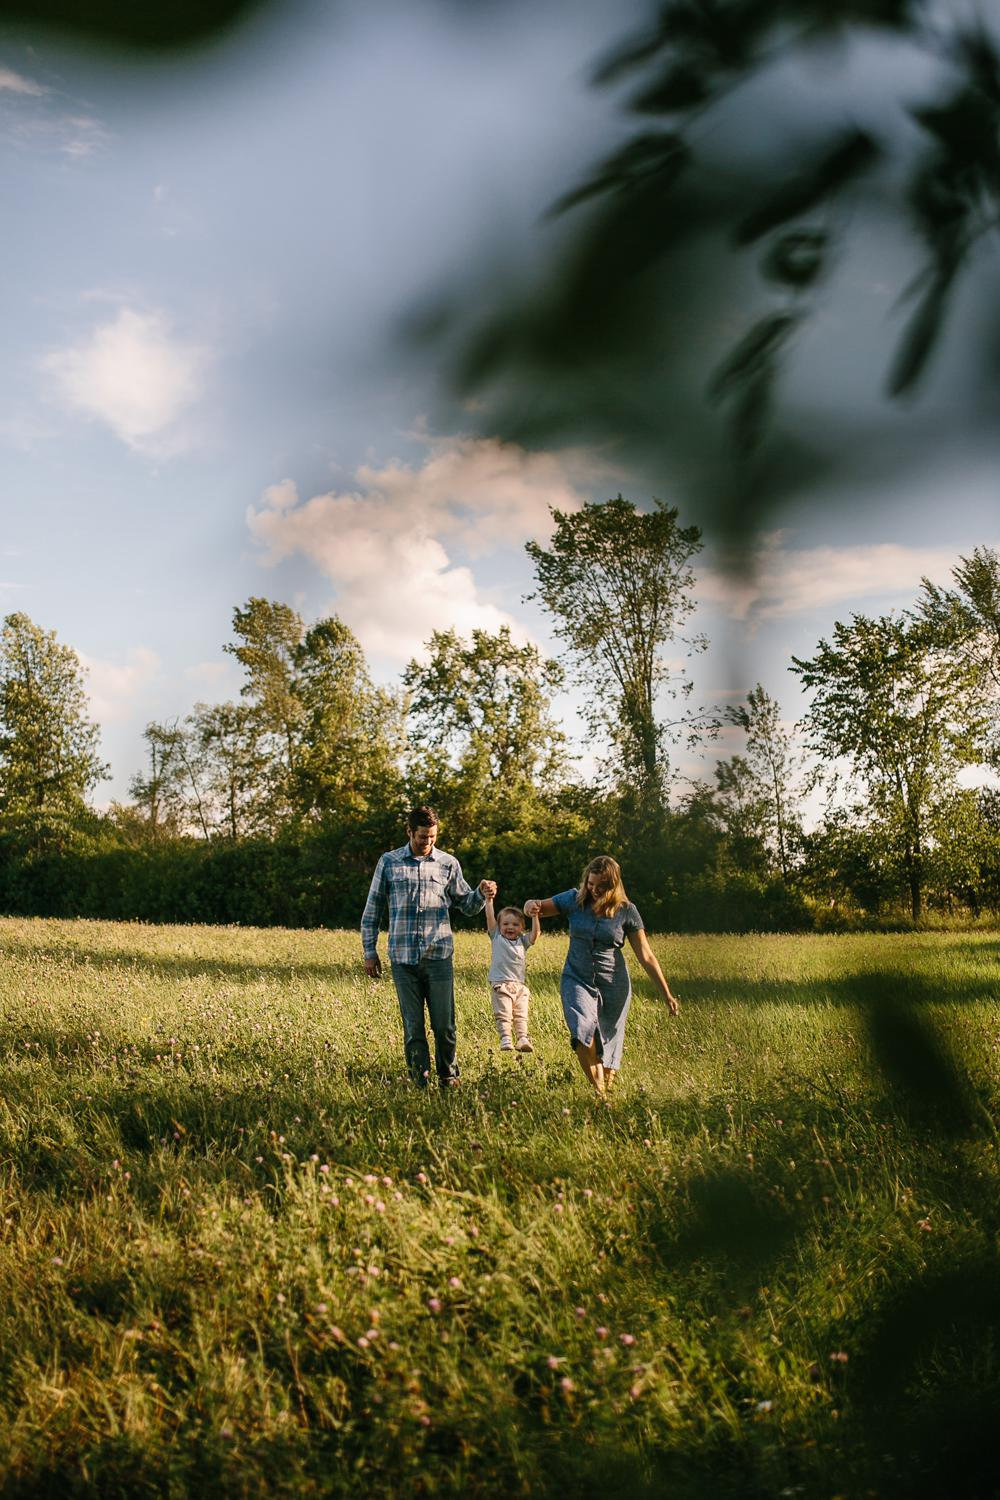 perth lanark county family outdoor photographer - kerry ford photography-045.jpg